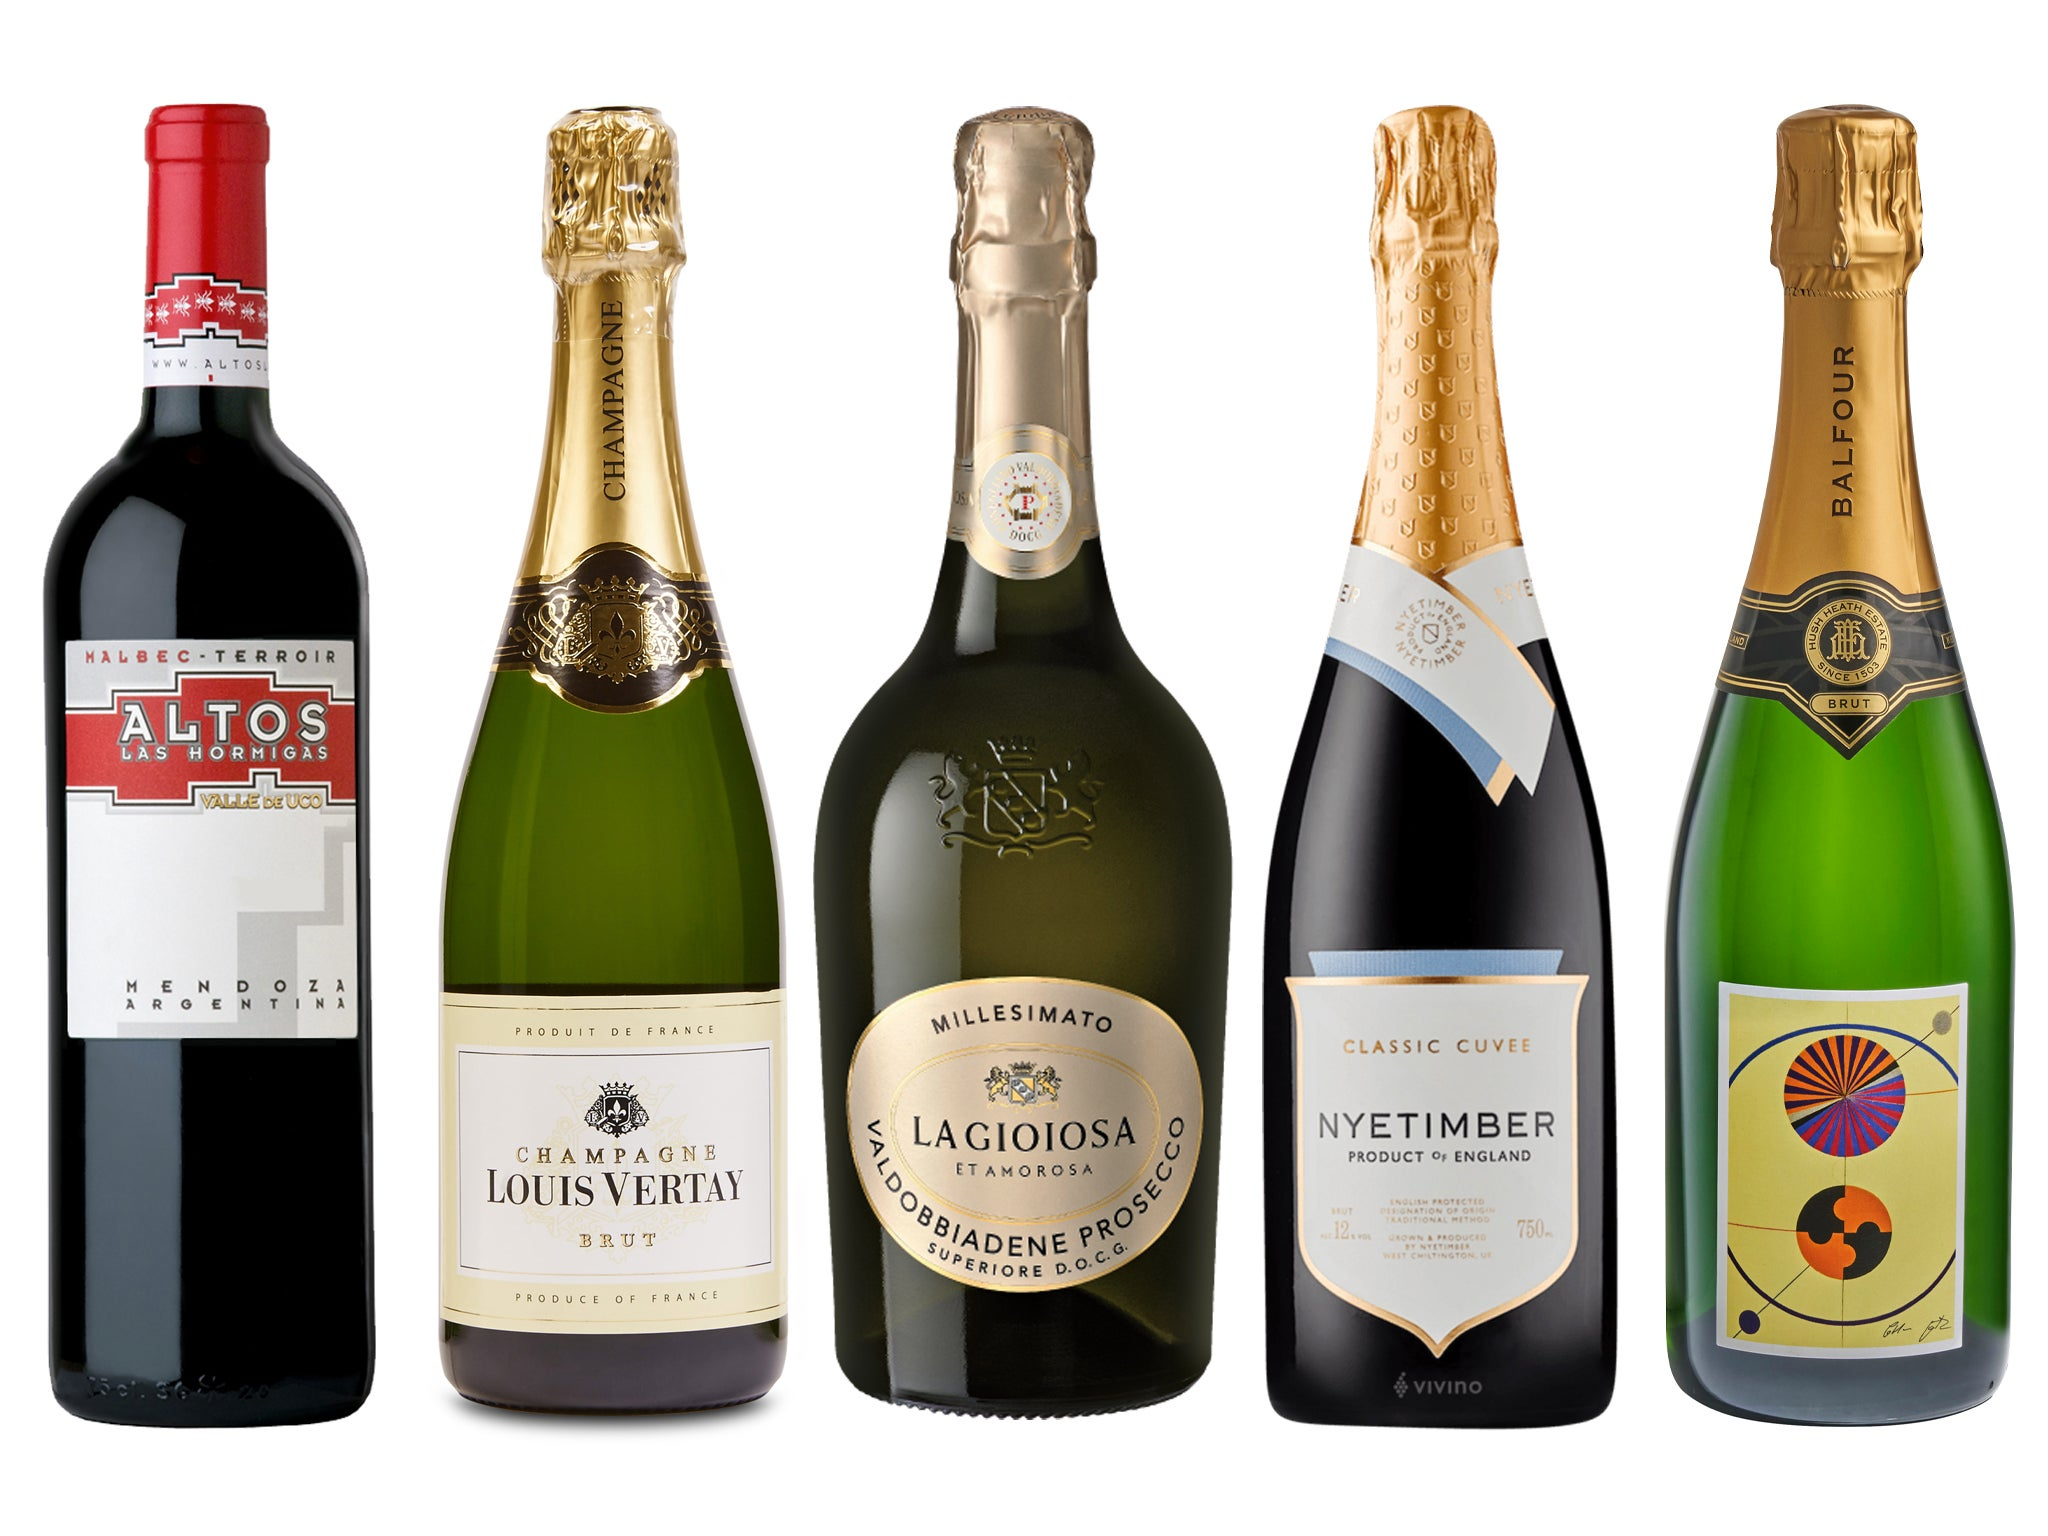 Ten high street wines to see you through to new year